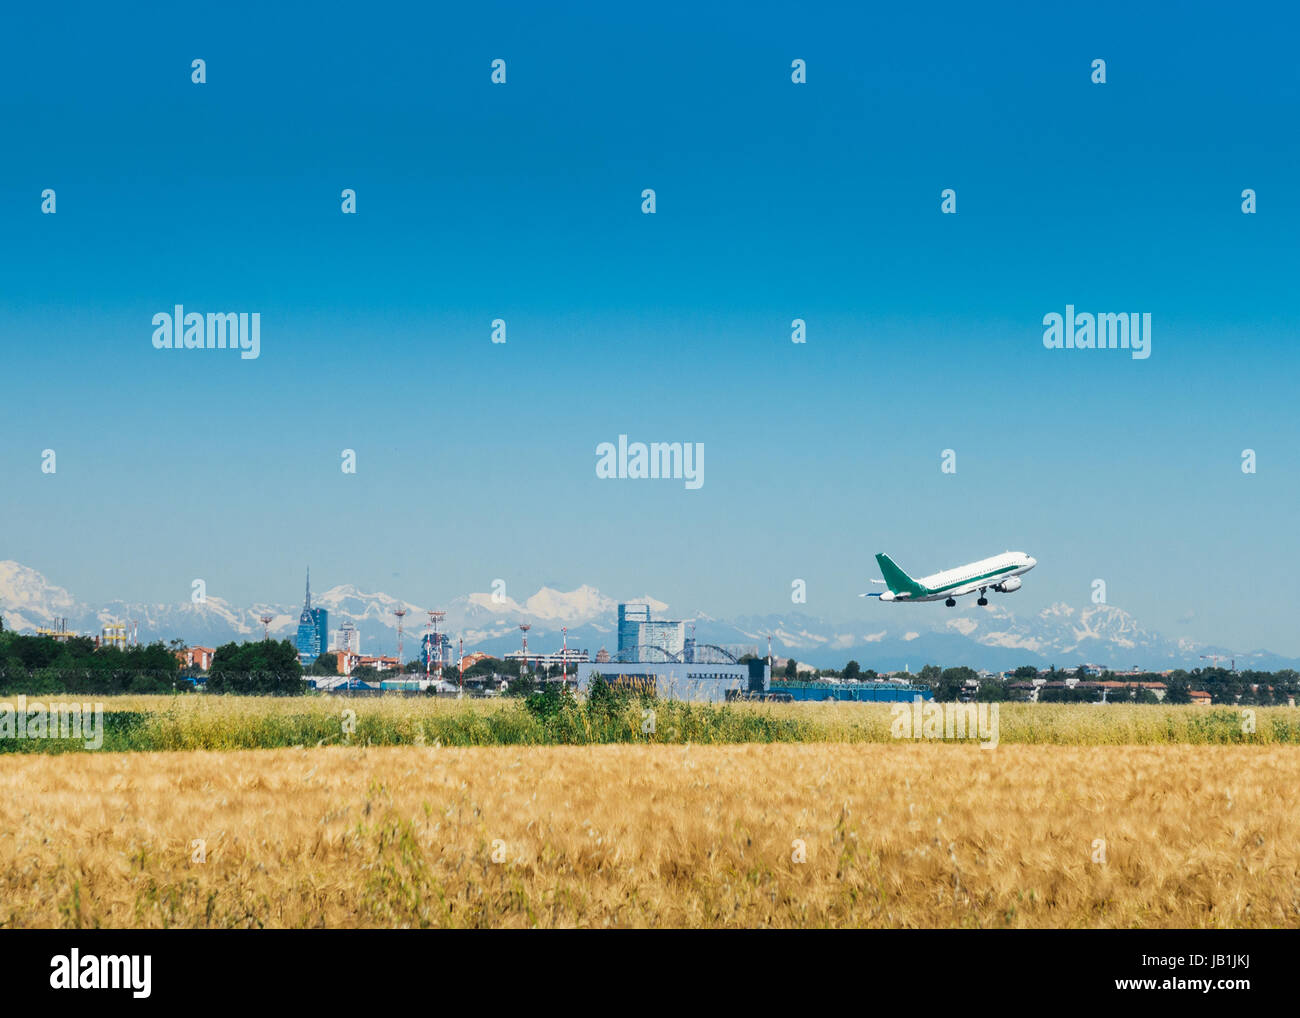 A commercial airplane takes off from Milan with the city skyline in the background and Italian alps also visible - Stock Image